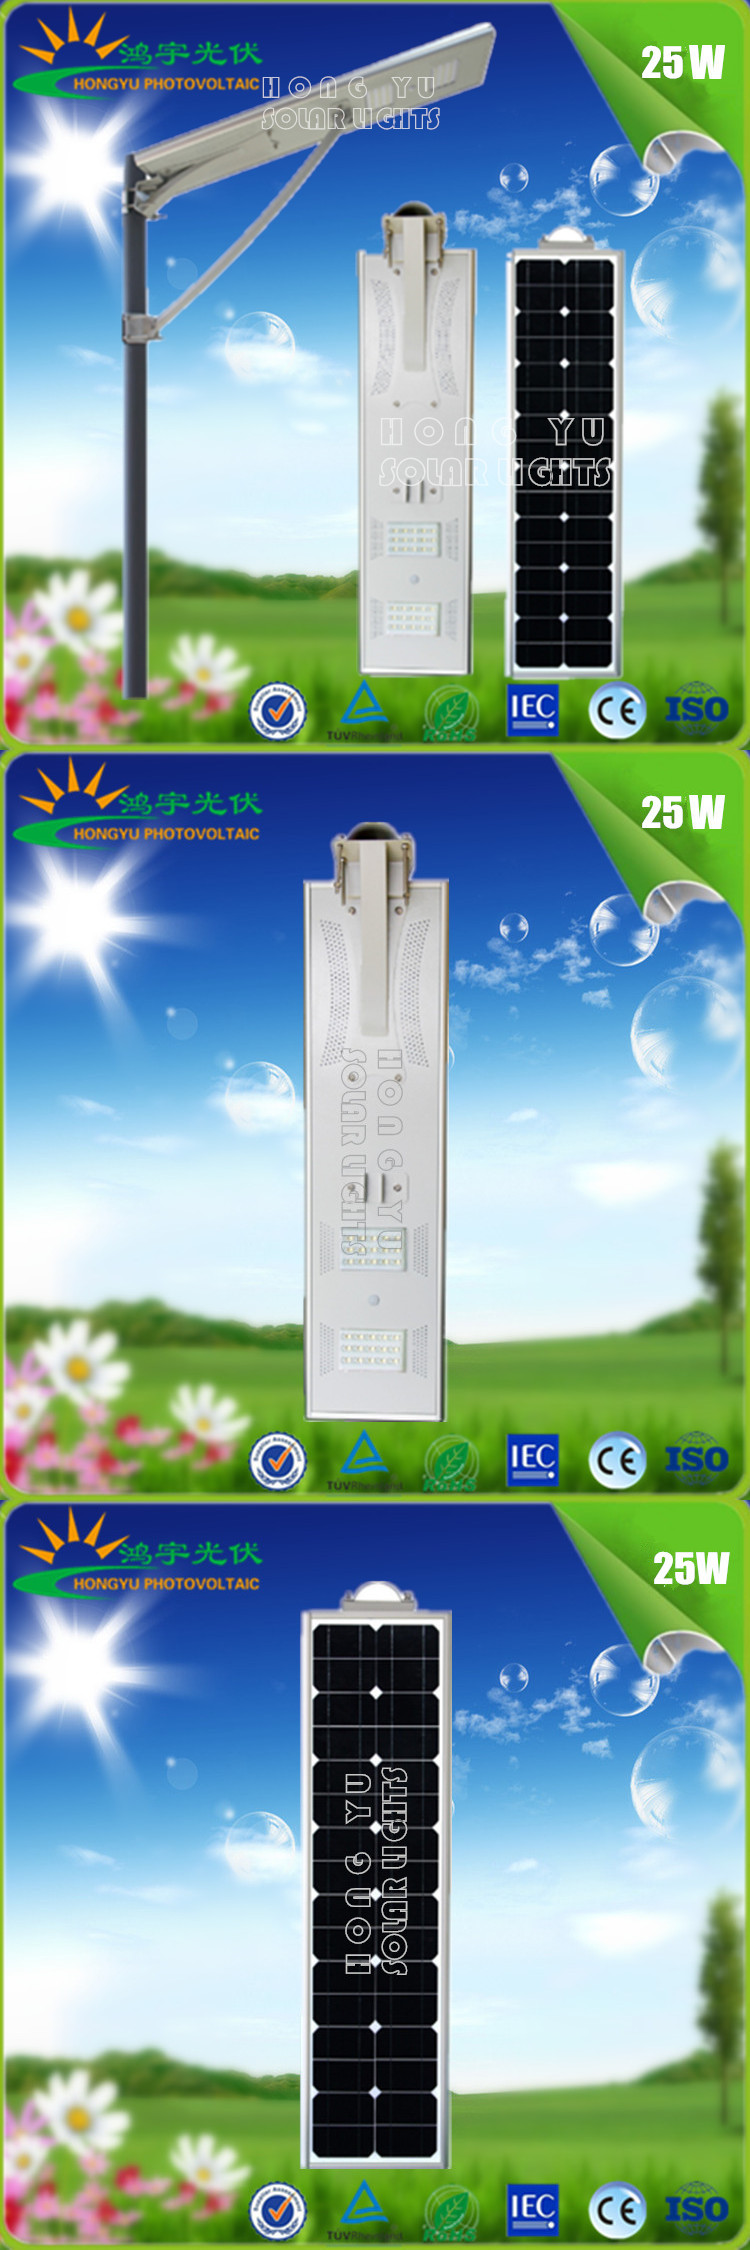 25W All in One Integrated Solar LED Street Light with motion sensor